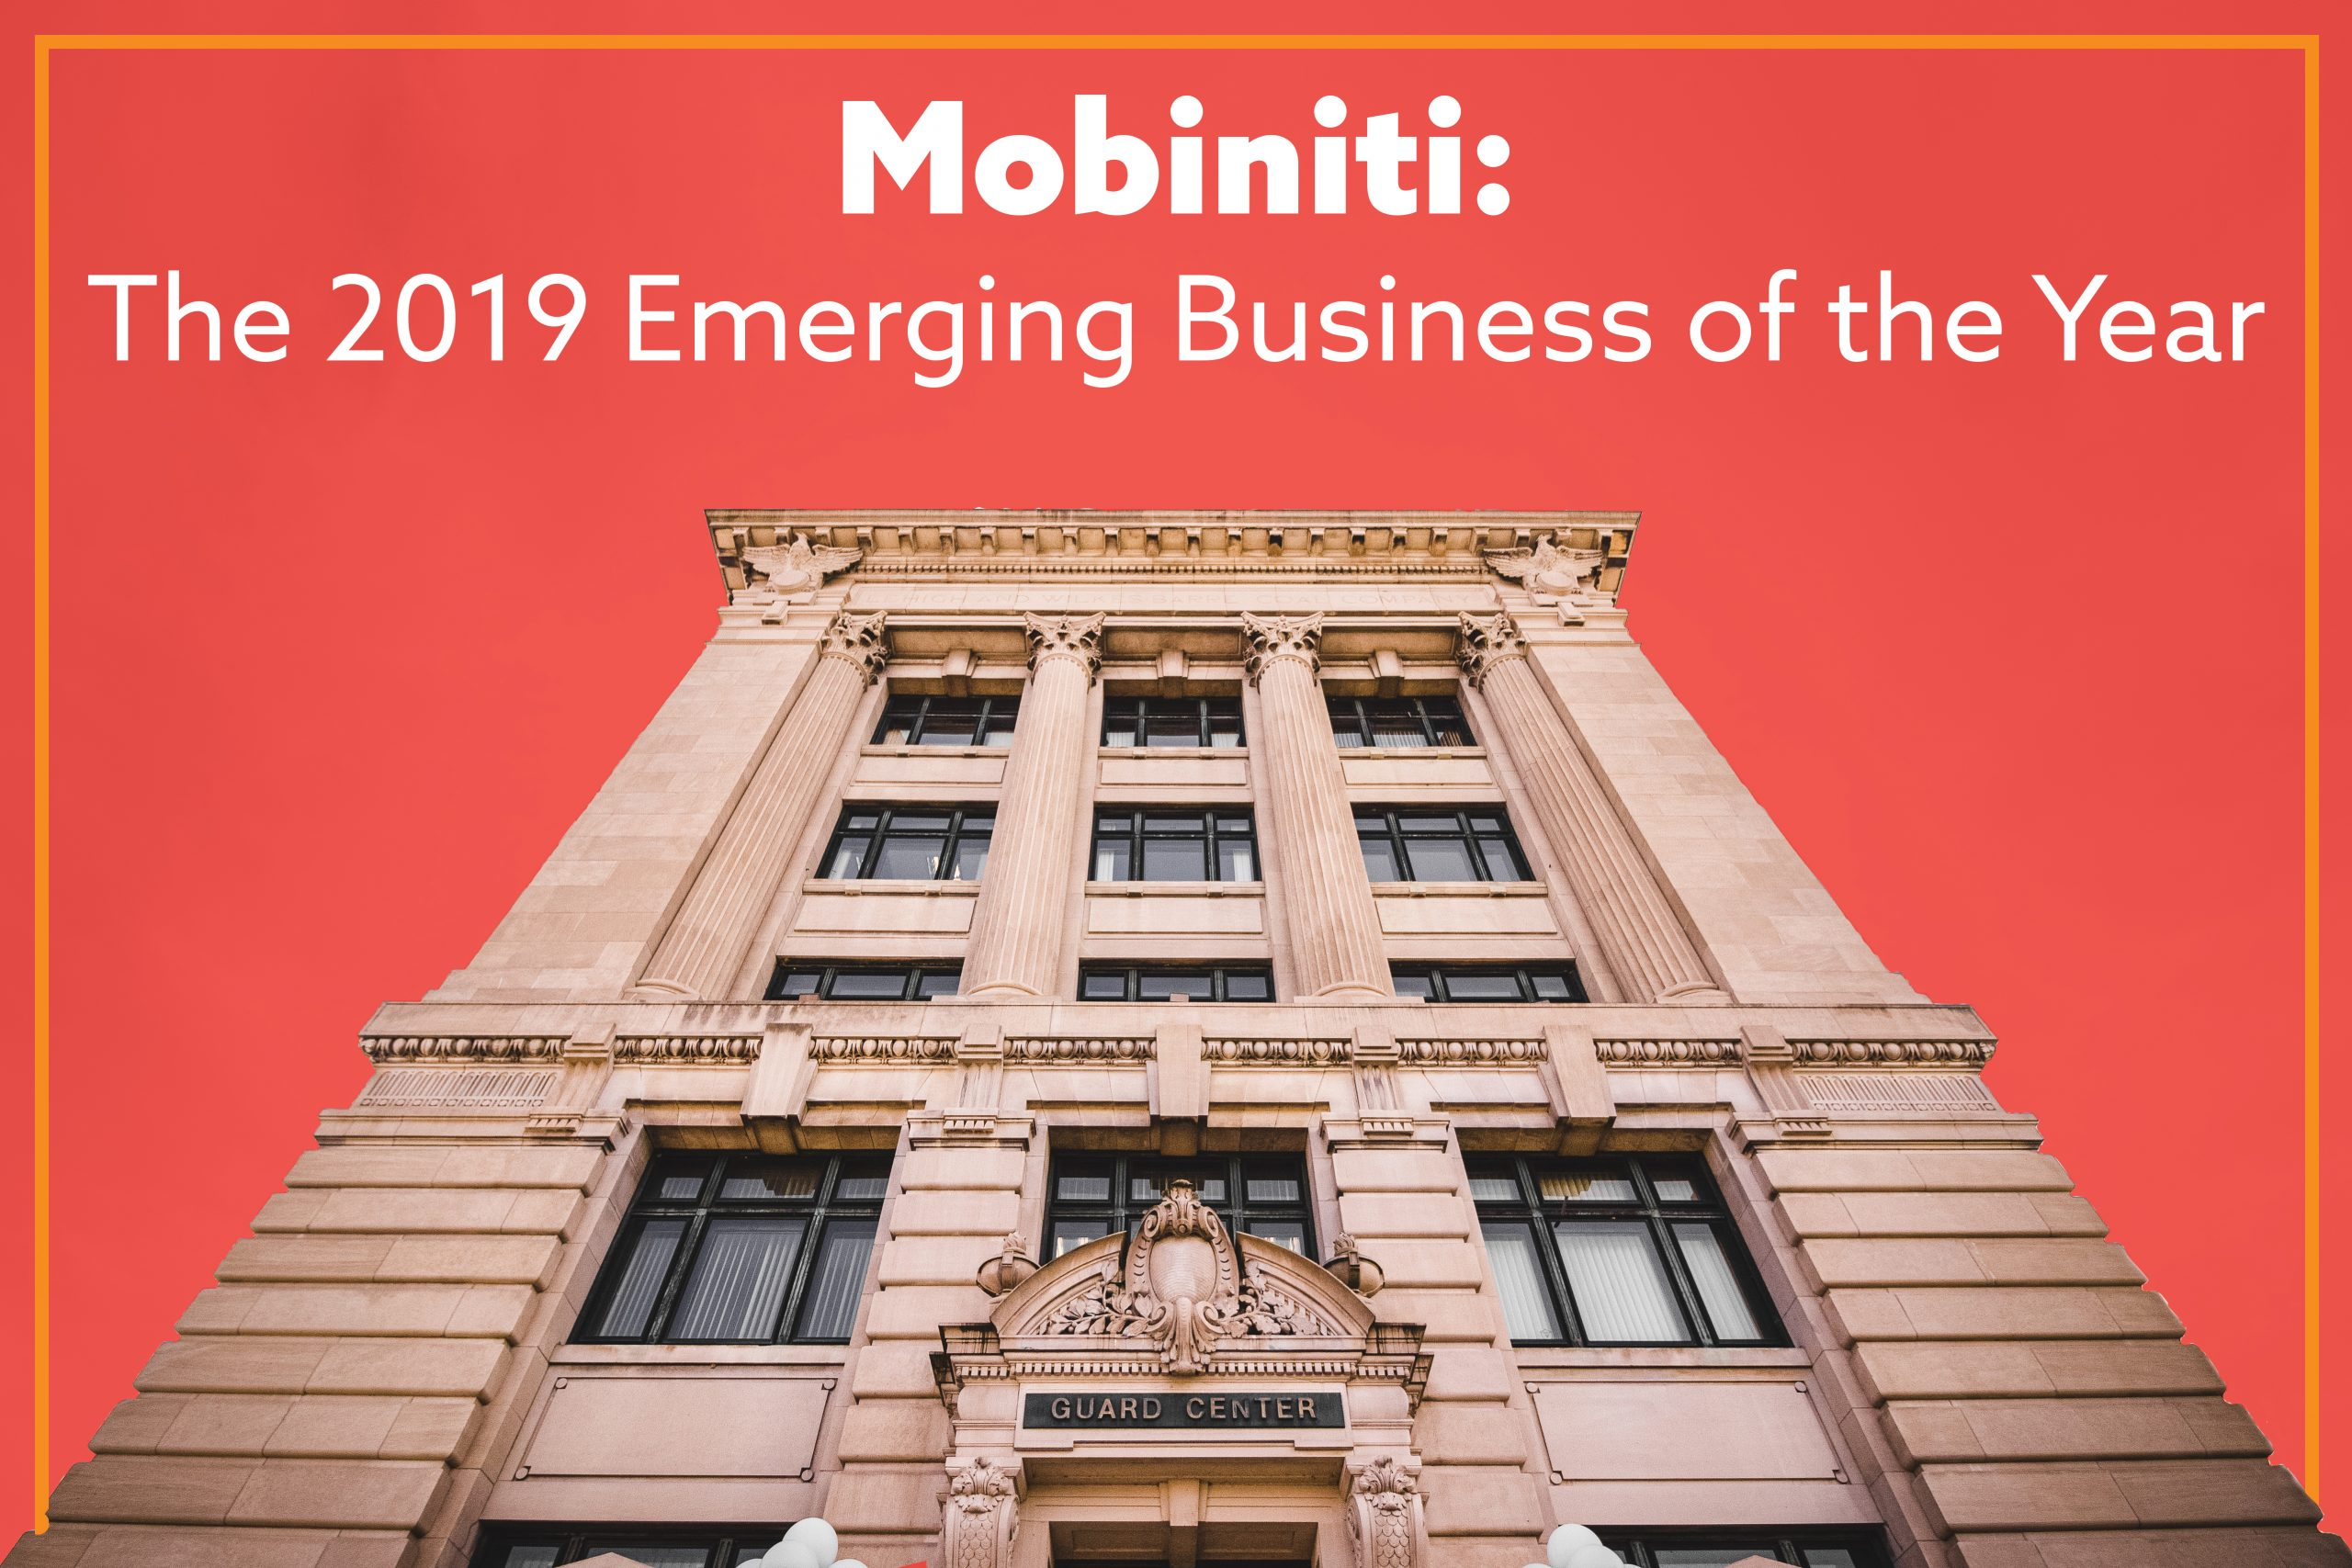 Mobiniti is Wilkes-Barre's Emerging Business of 2019.